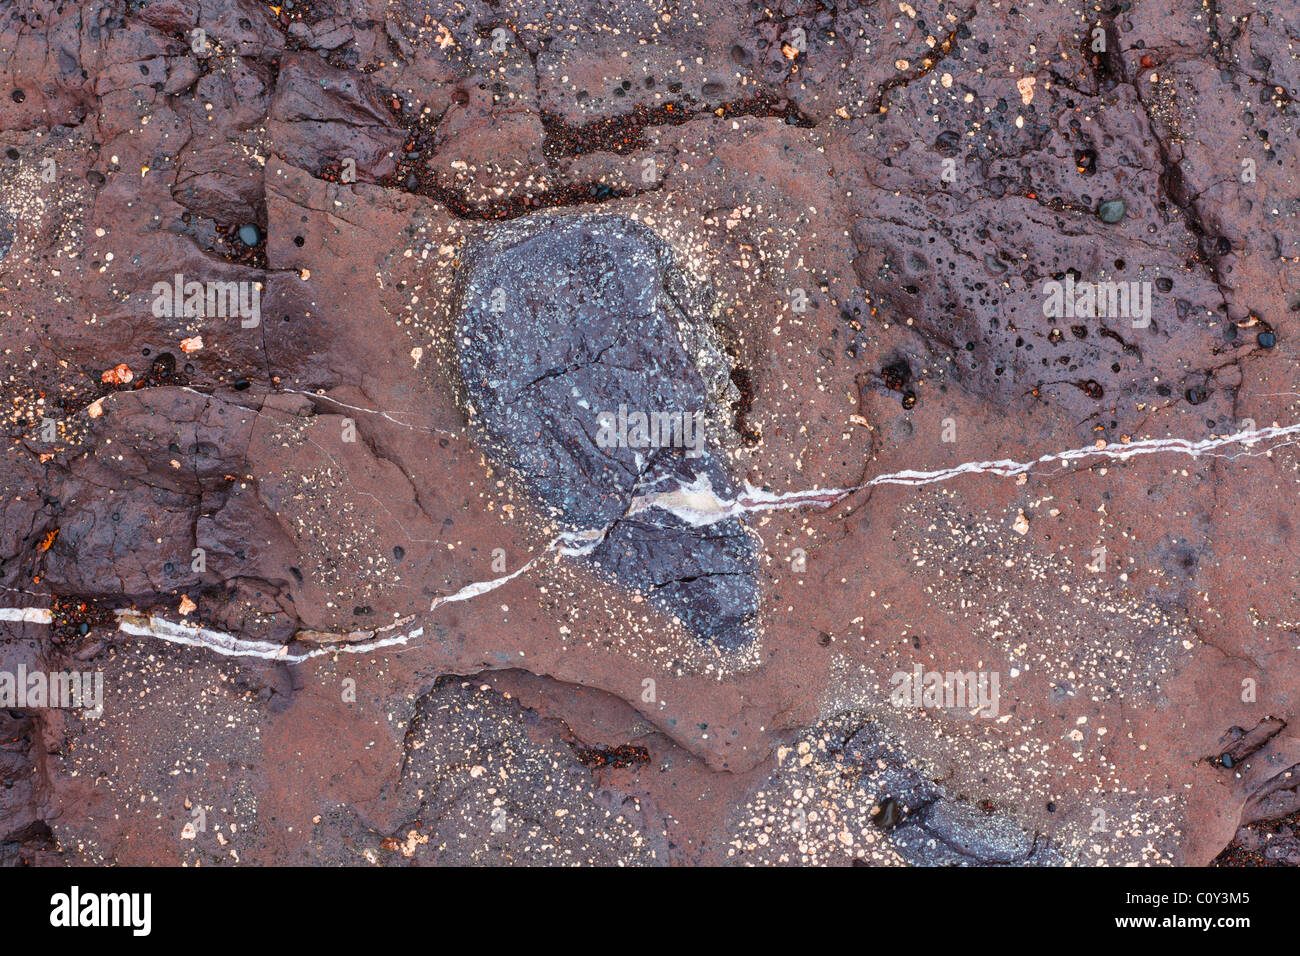 Detail of ancient eroded rock on the shore of Lake Superior showing quartz vein and various colorful mineral inclusions. - Stock Image